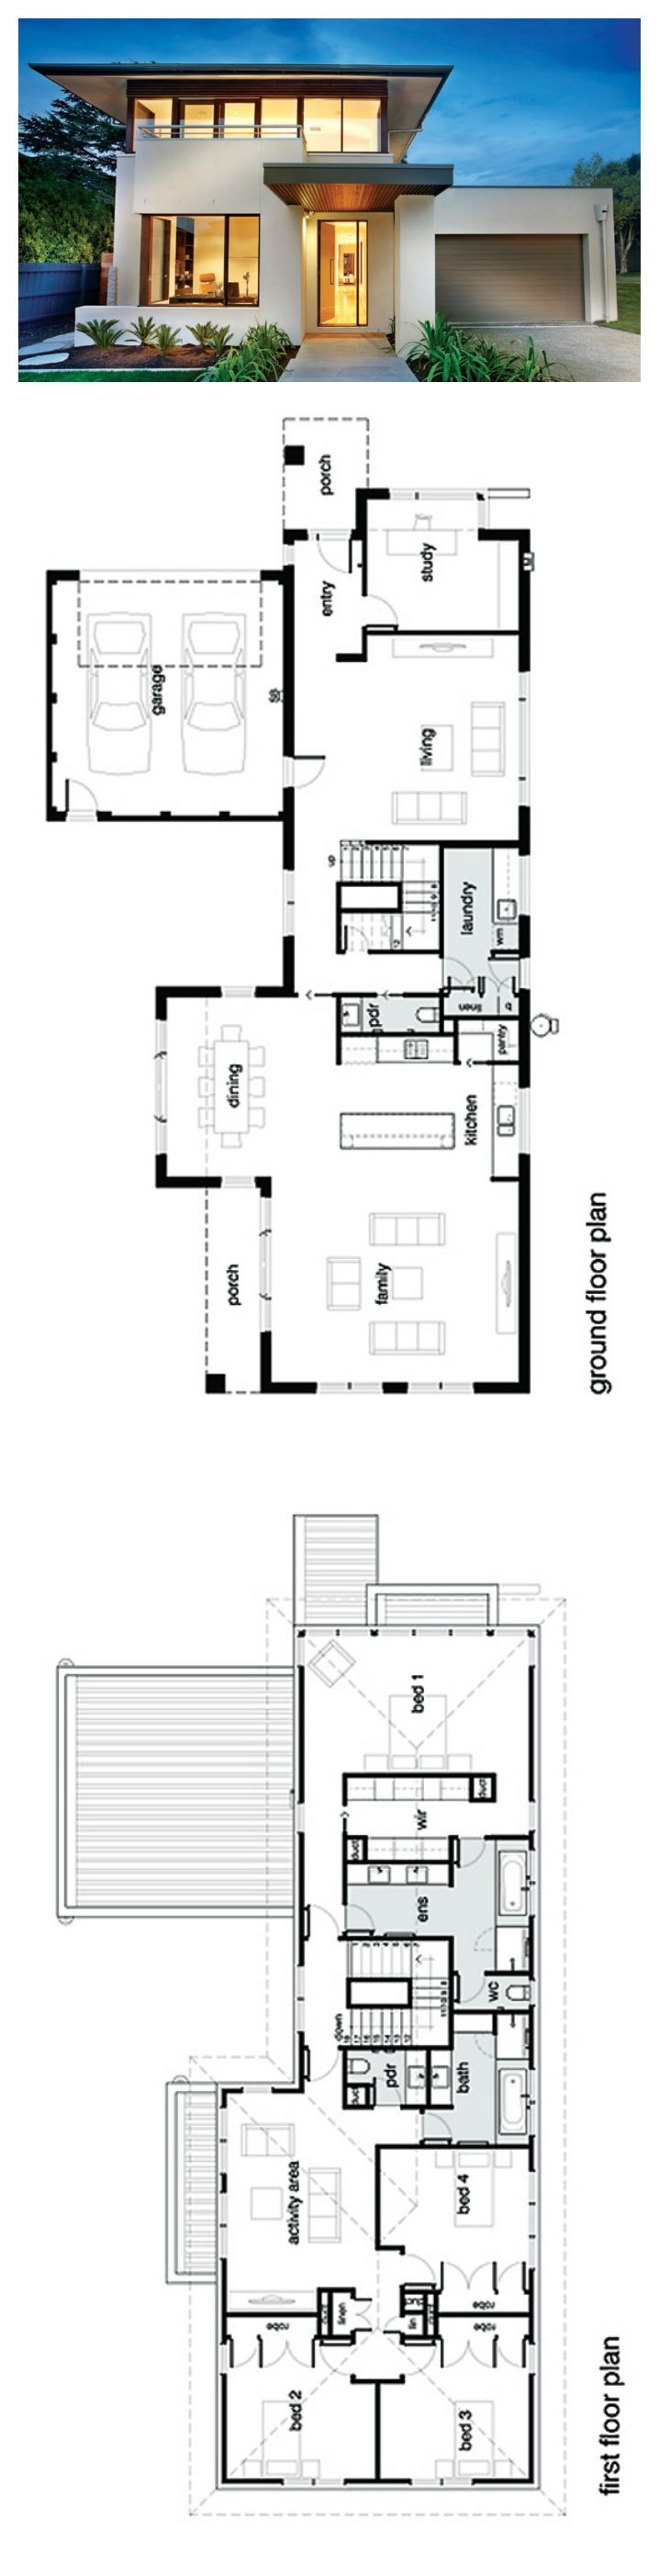 The 25 best ideas about modern house plans on pinterest for Modern house 2 floor